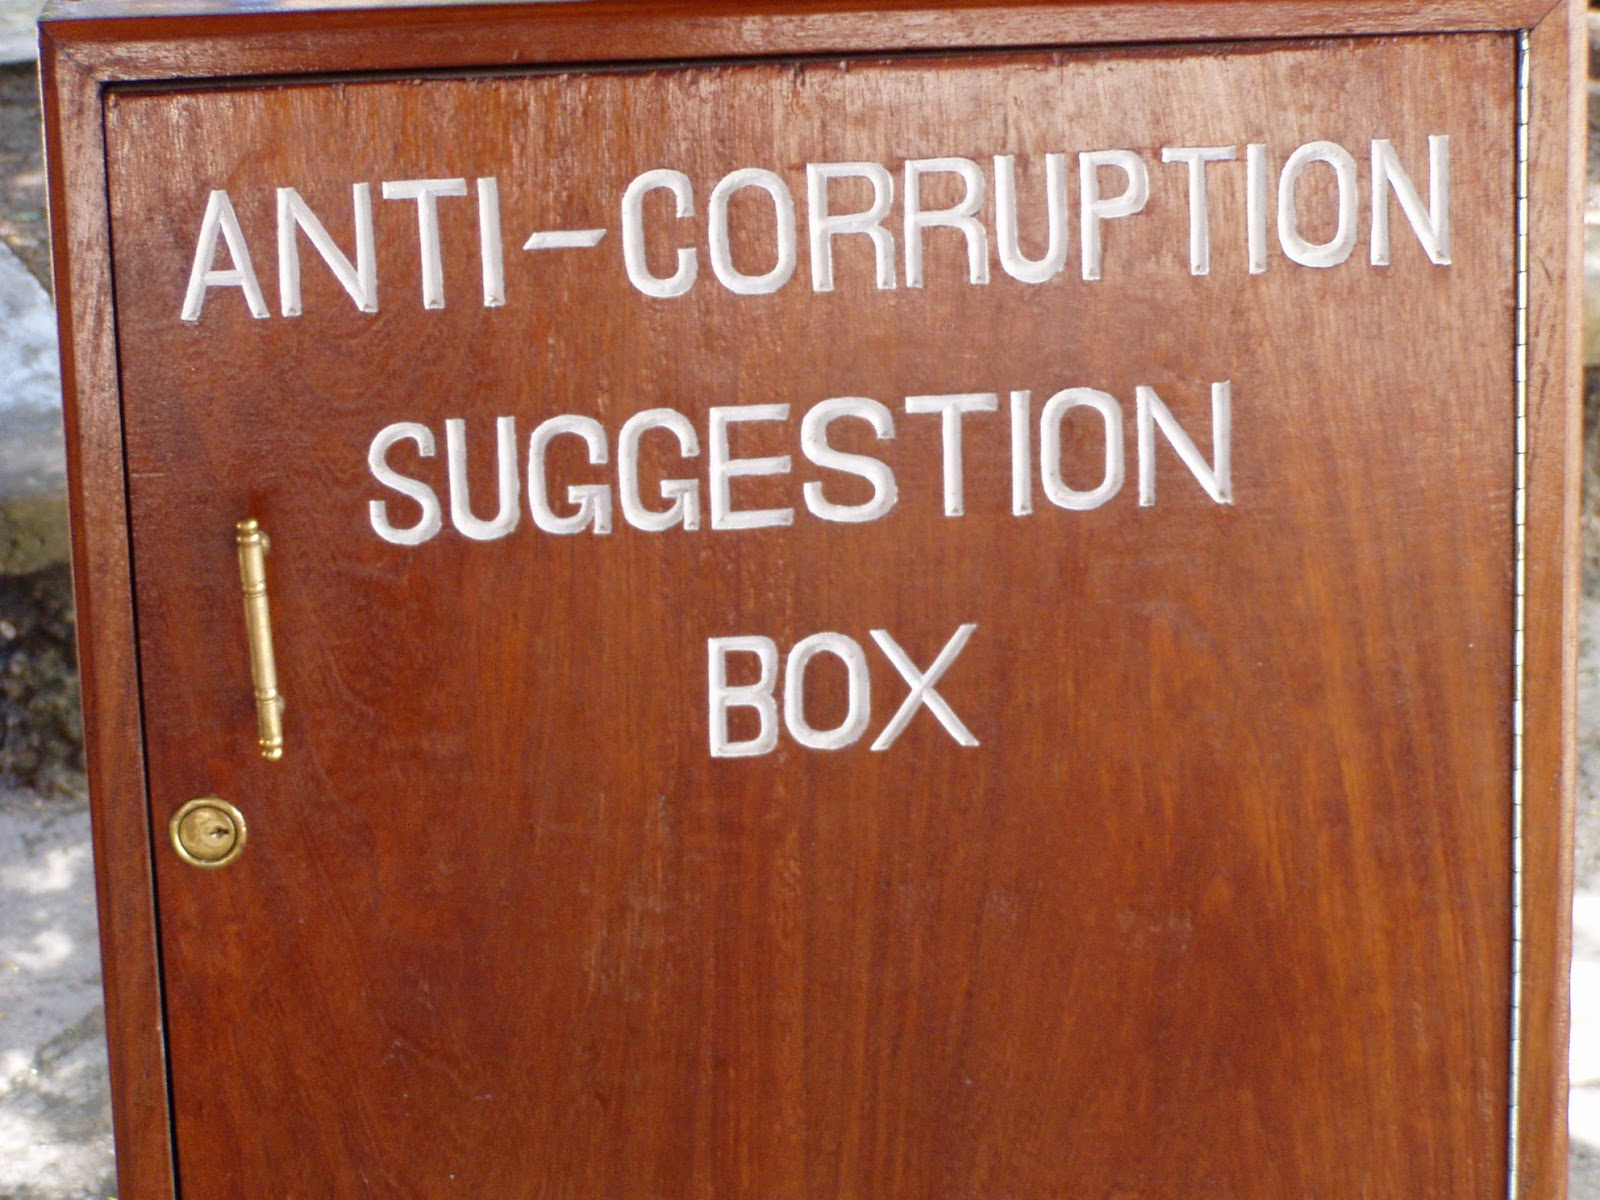 Anit-corruption suggestion box